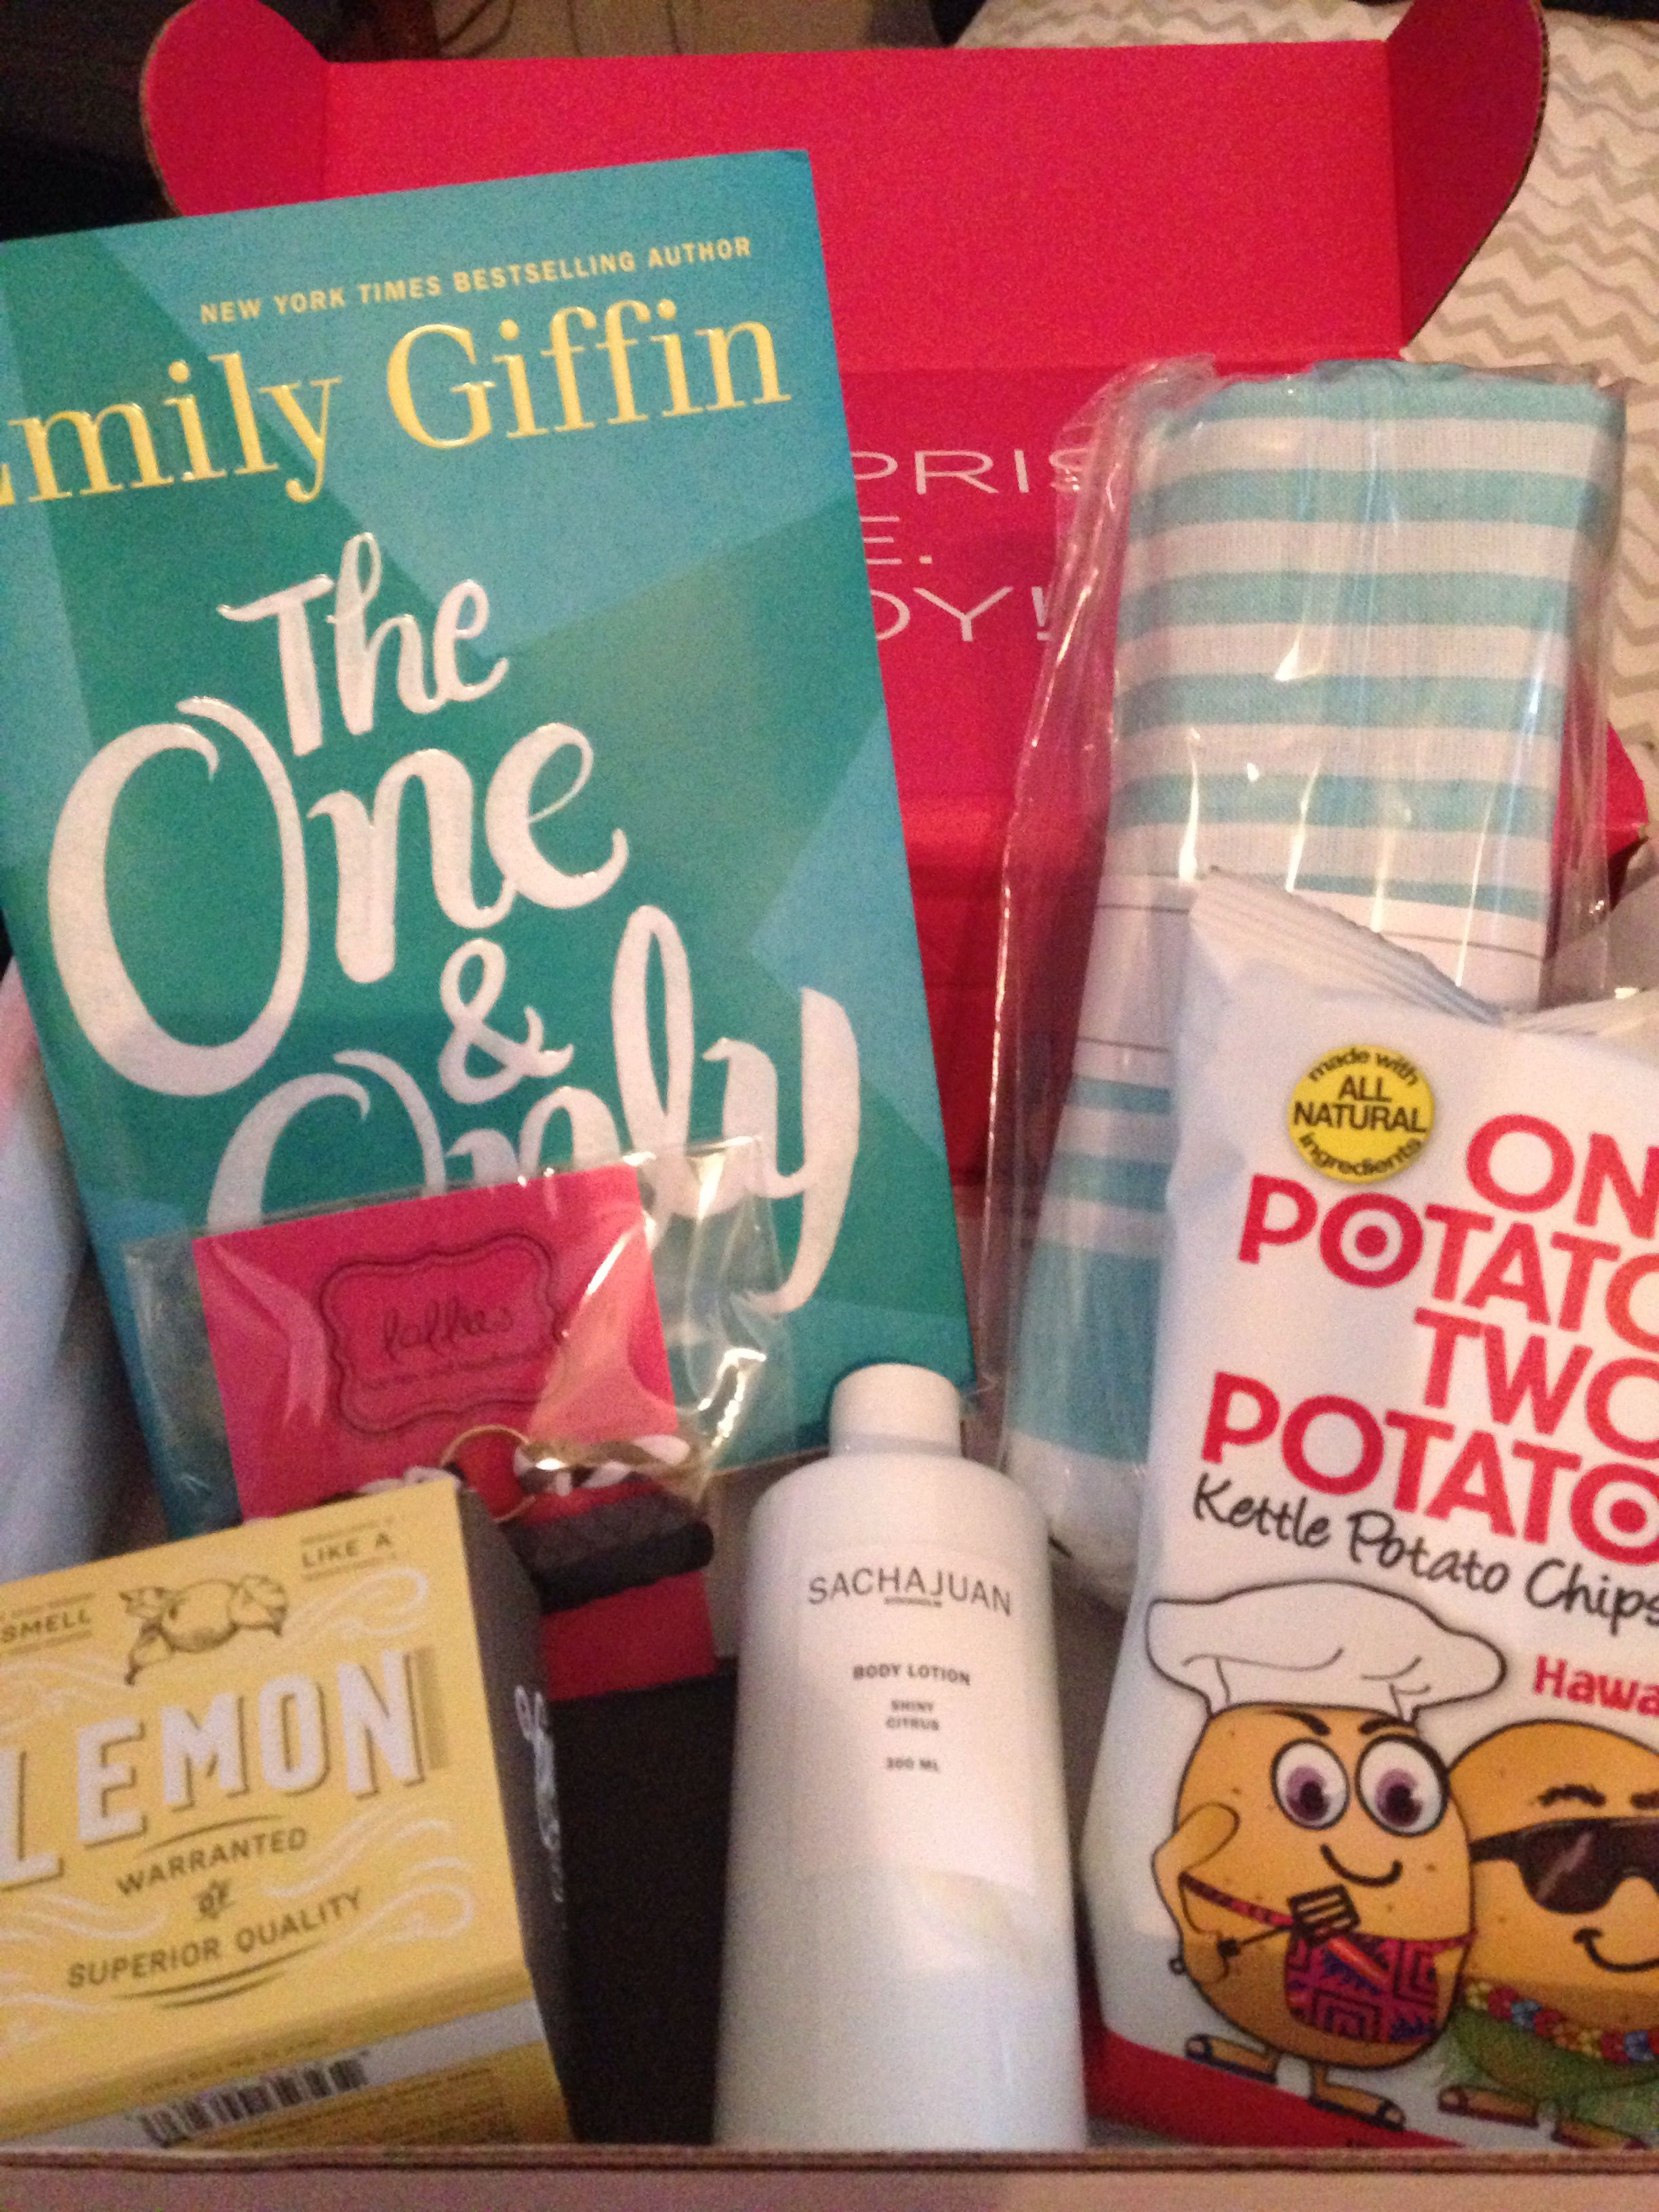 My first Popsugar must have box! (Emily Giffin book, potato chips, sacha Juan body lotion, Lollies headbands, Turkish-t towel, you smell wet wipes)